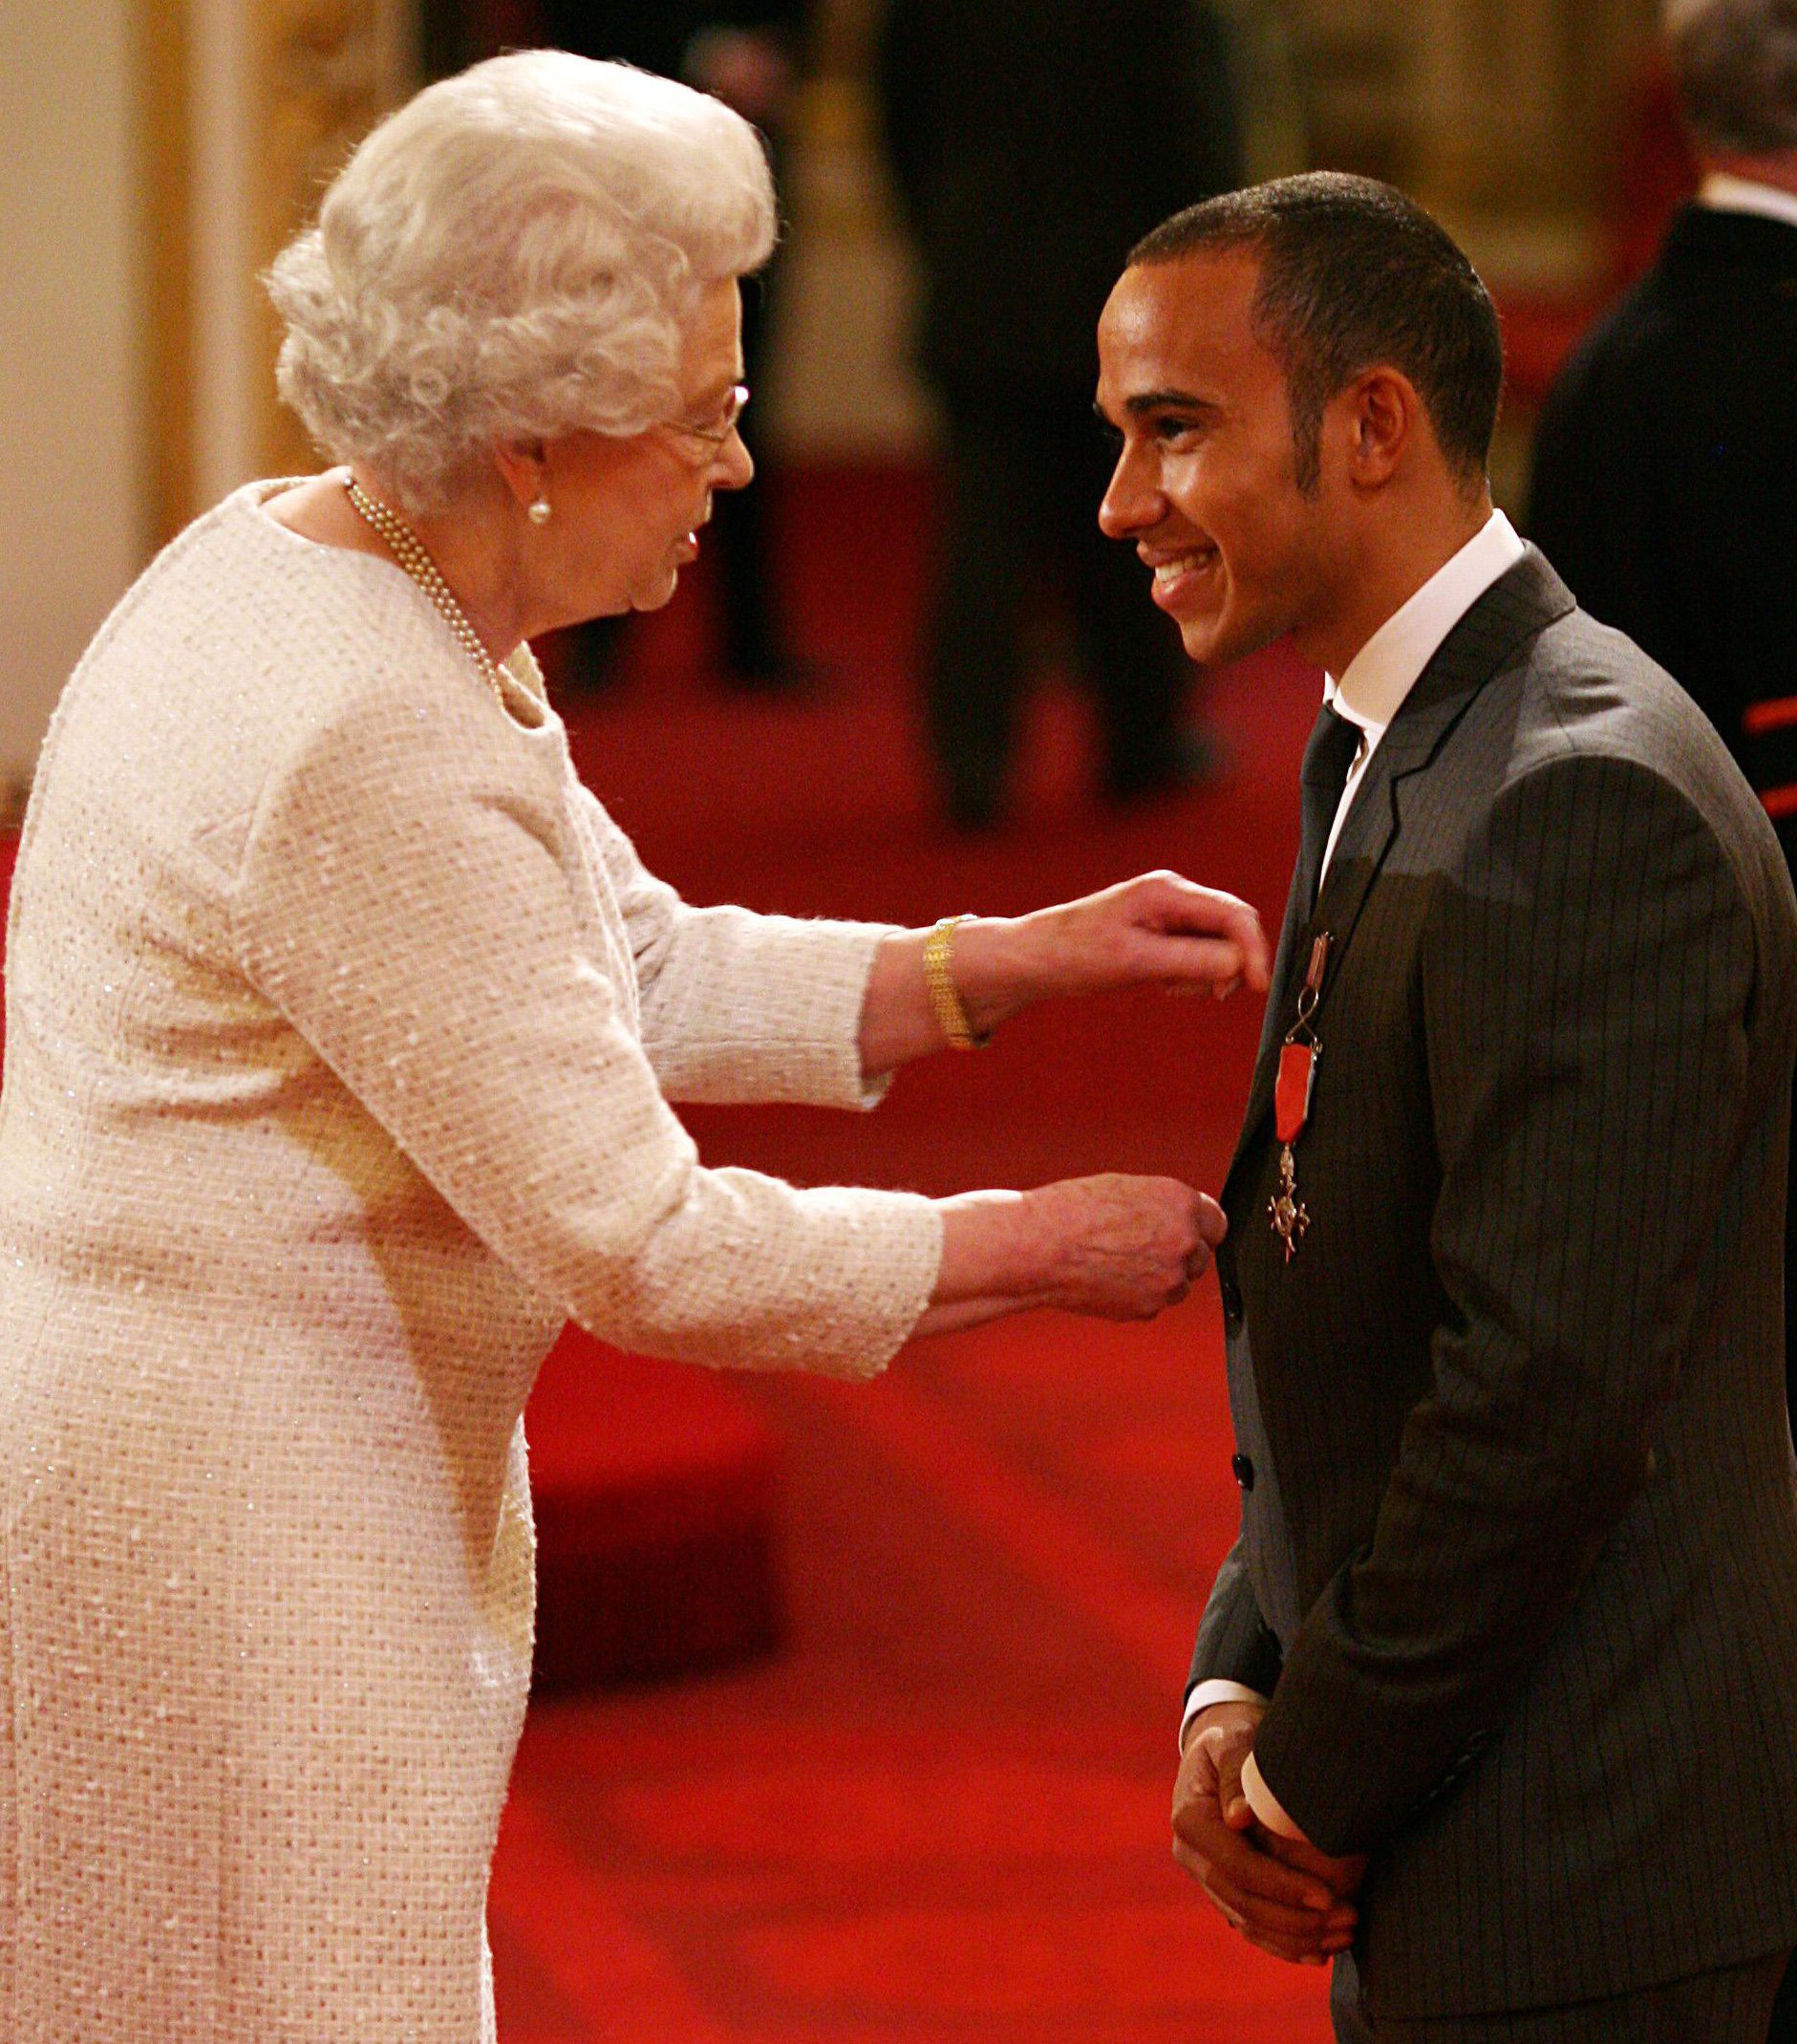 Lewis Hamilton says it has been eight long years since he met Queen Elizabeth II